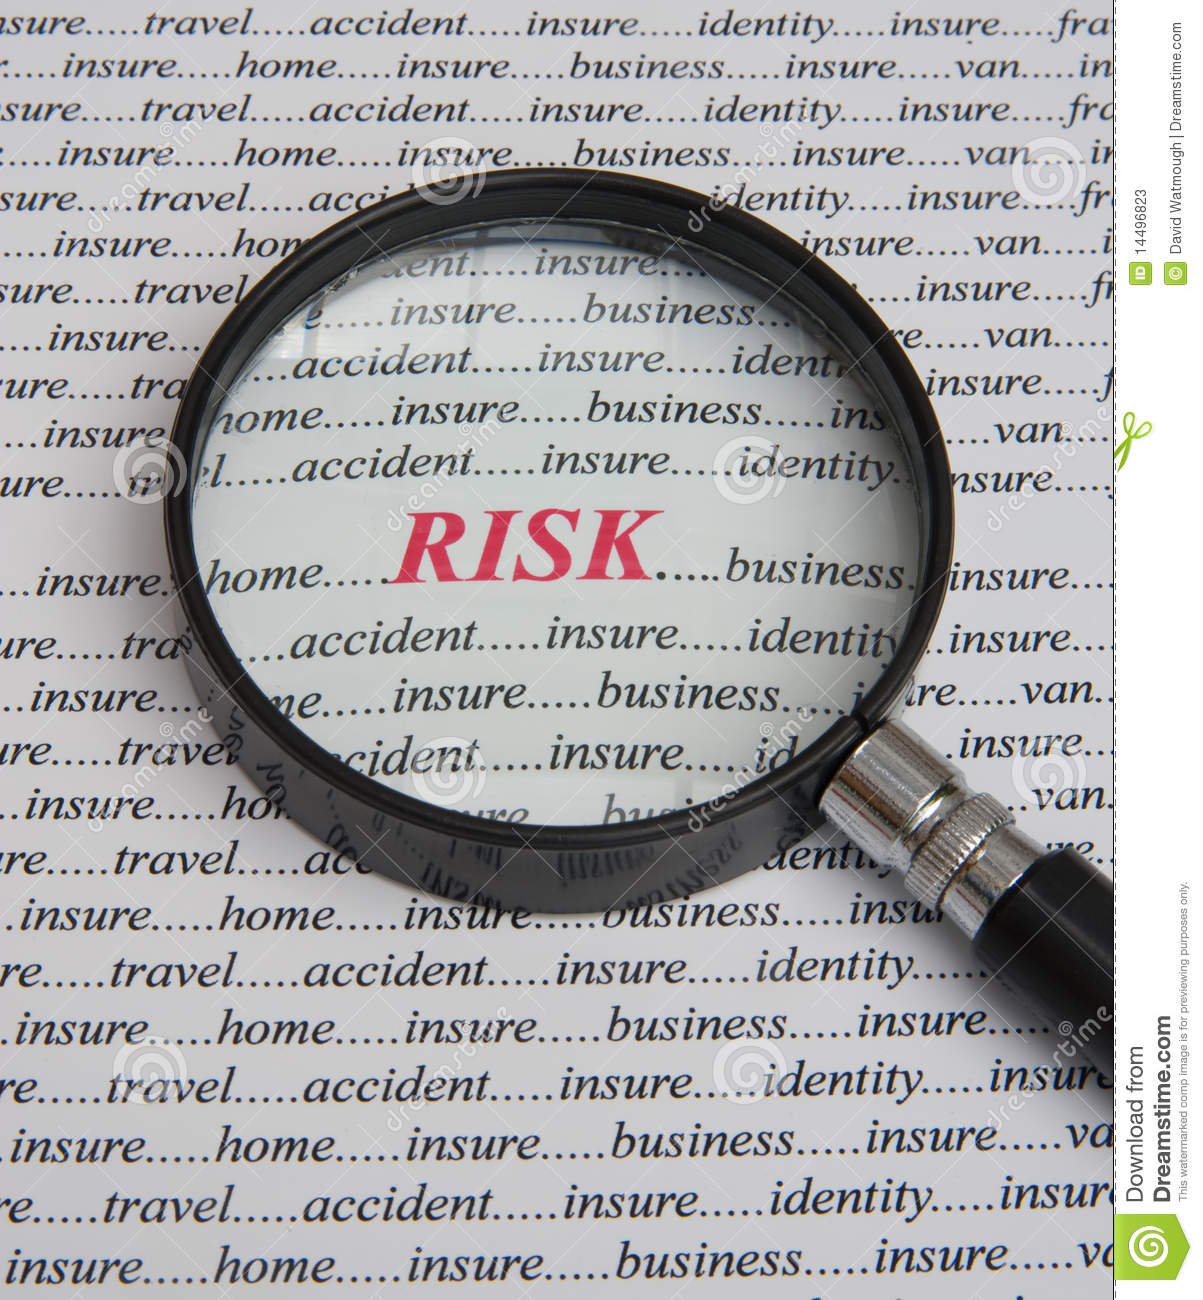 Focus on risk: it pays to insure.